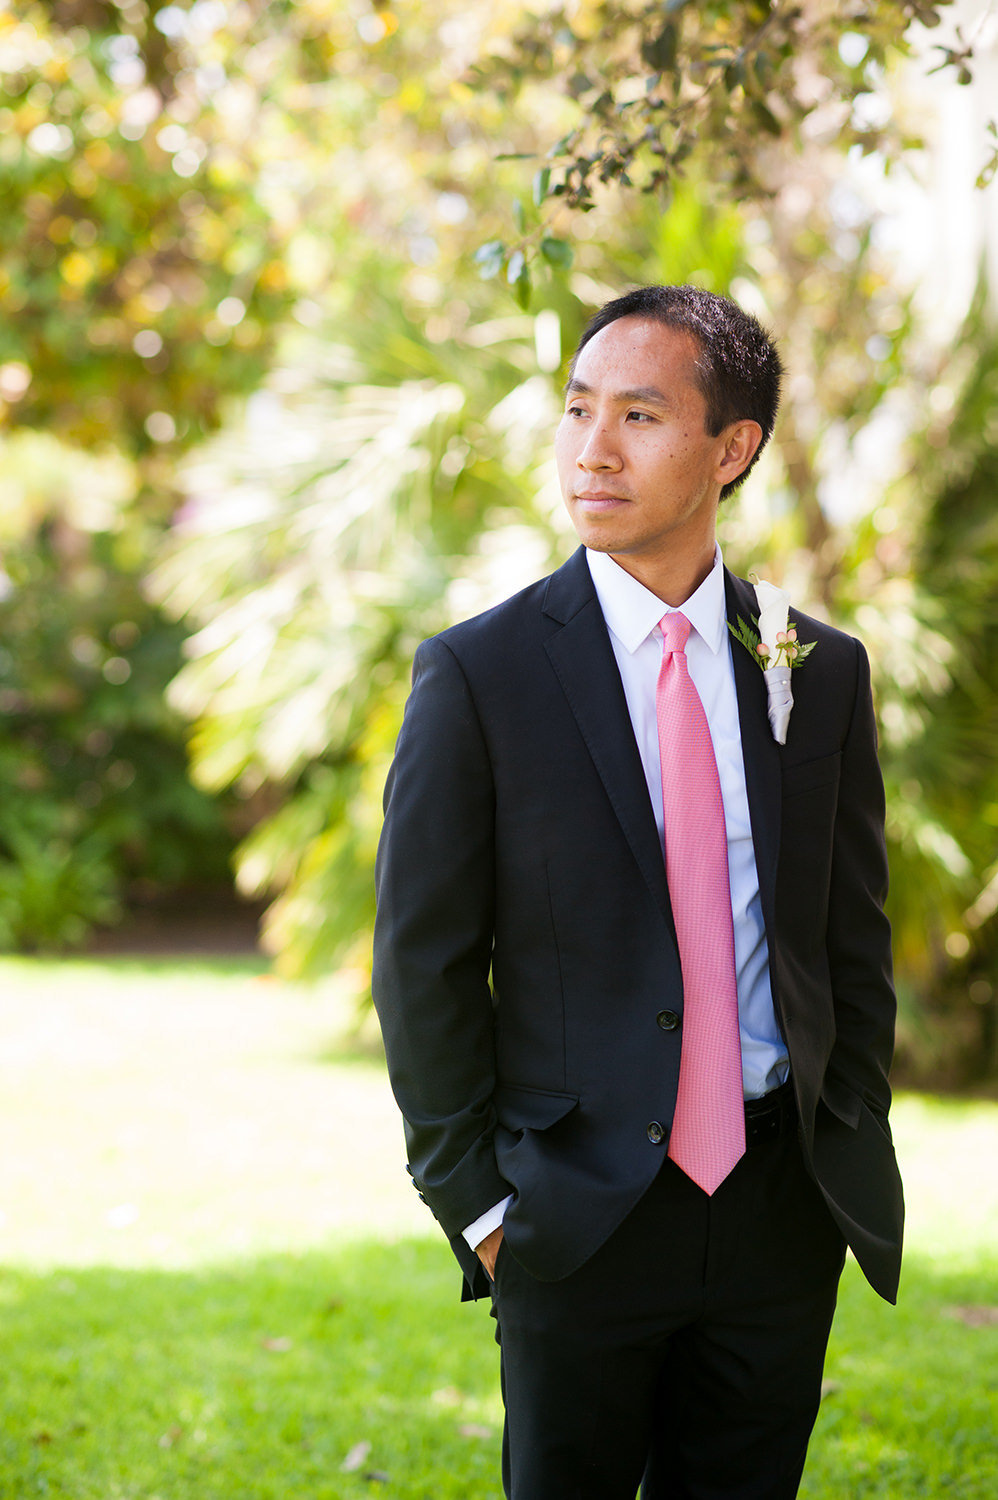 groom serious with pink tie